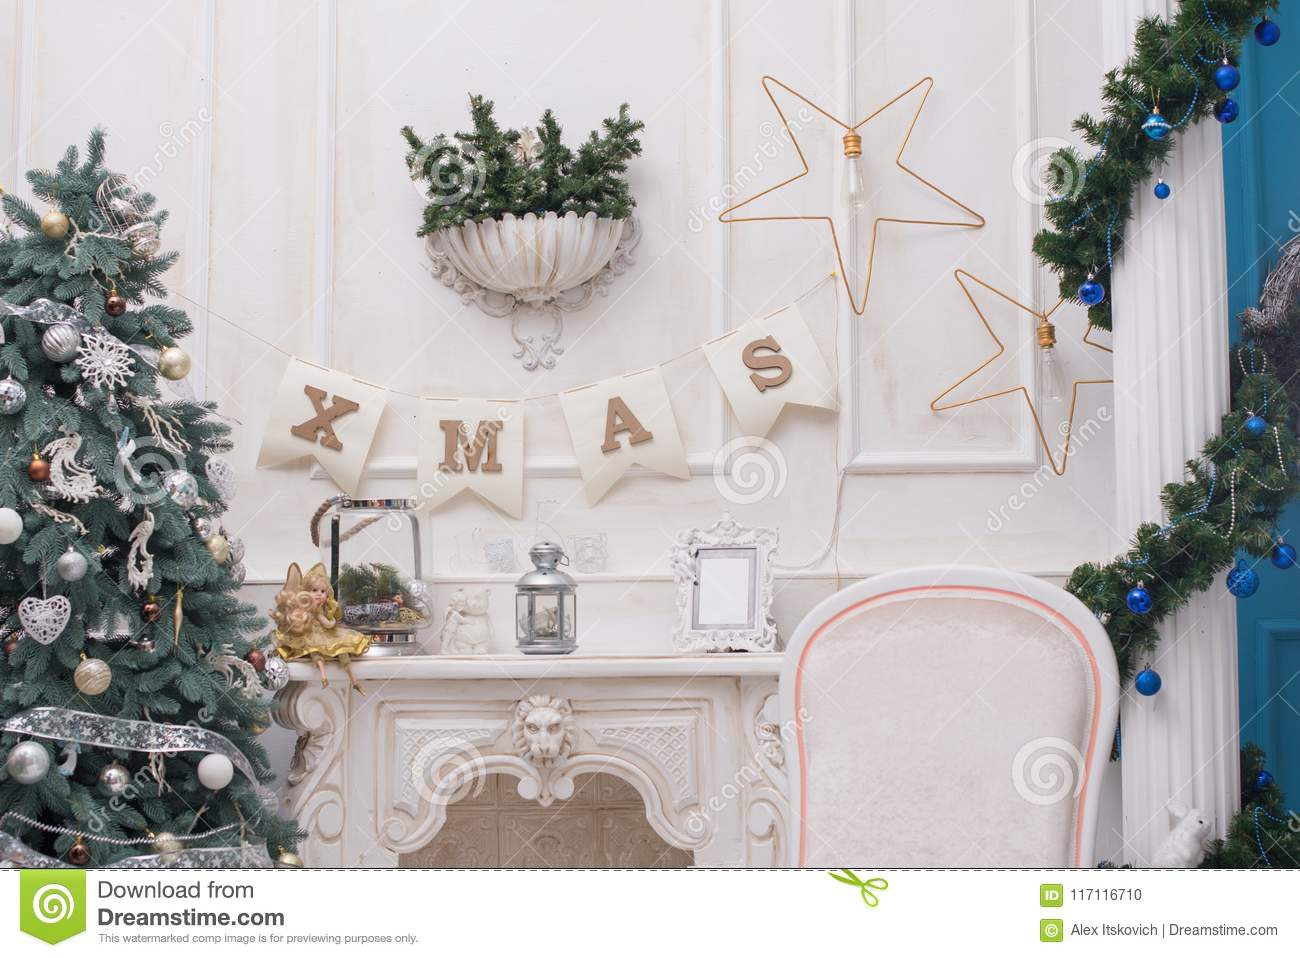 A cozy living room lighted with numerous lights decorated ready to celebrate Christmas. Christmas room interior design